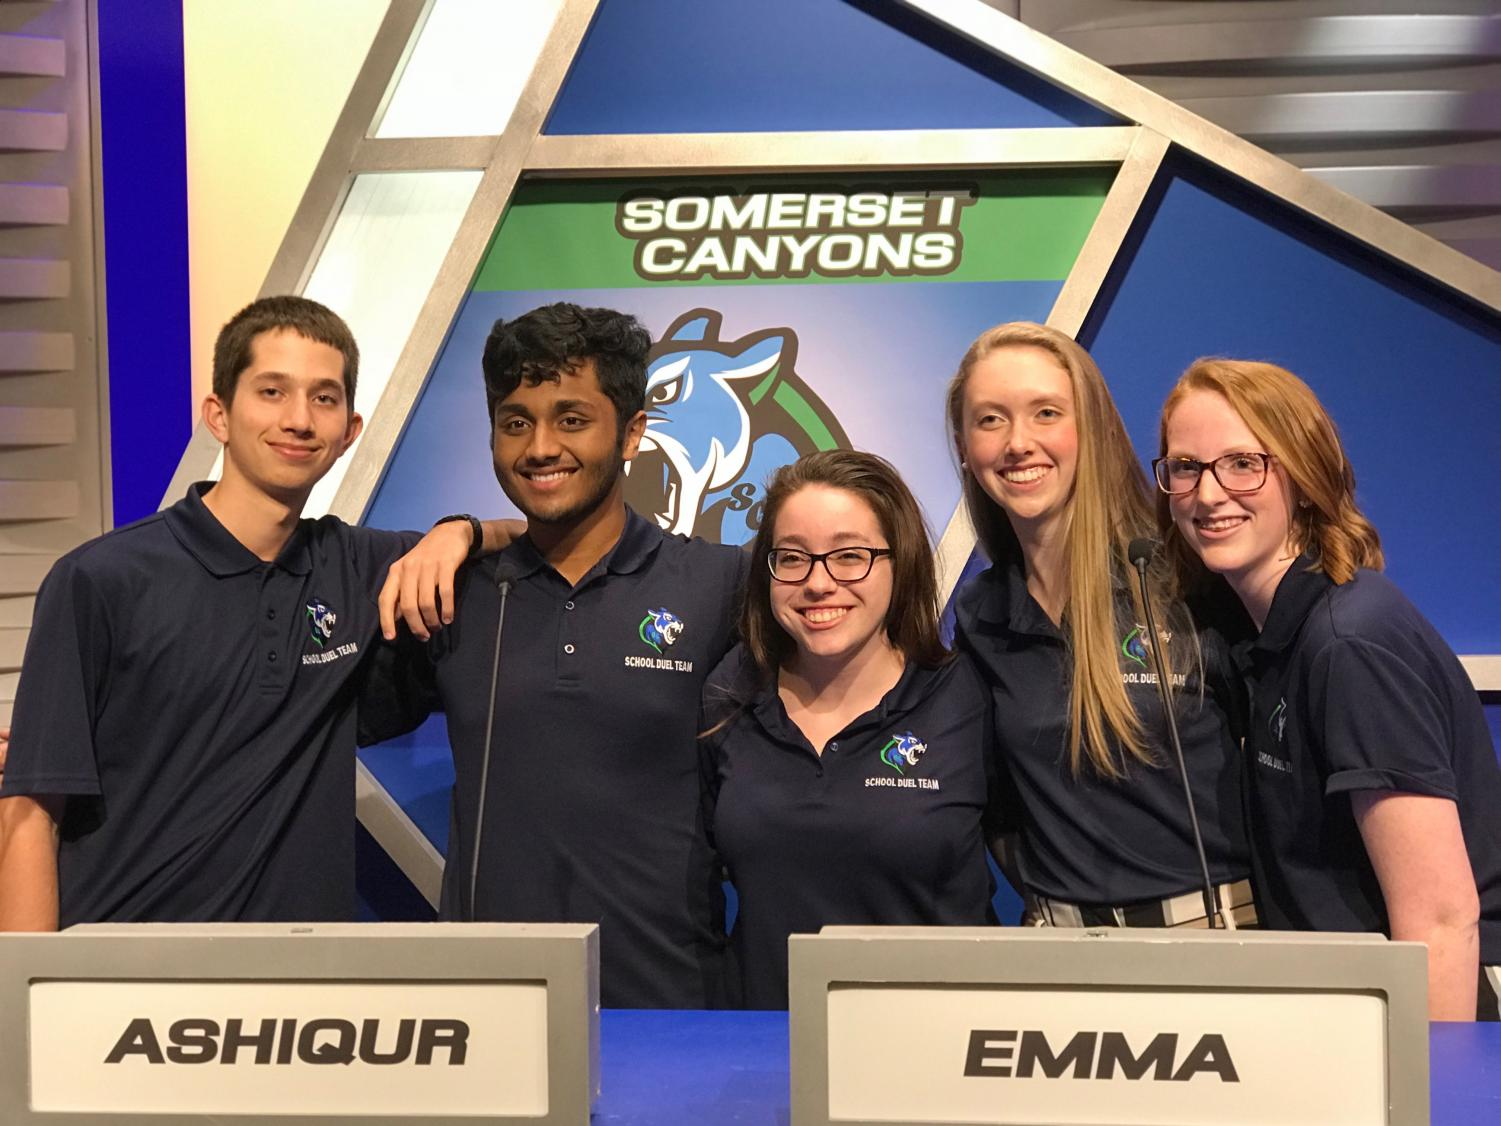 The SC School Duel team with their Sponsor! From left to right: Braden Strackman, Ash Rahman, Ms. Schooley (team sponsor), Emma Carter, and Enya Clancy.